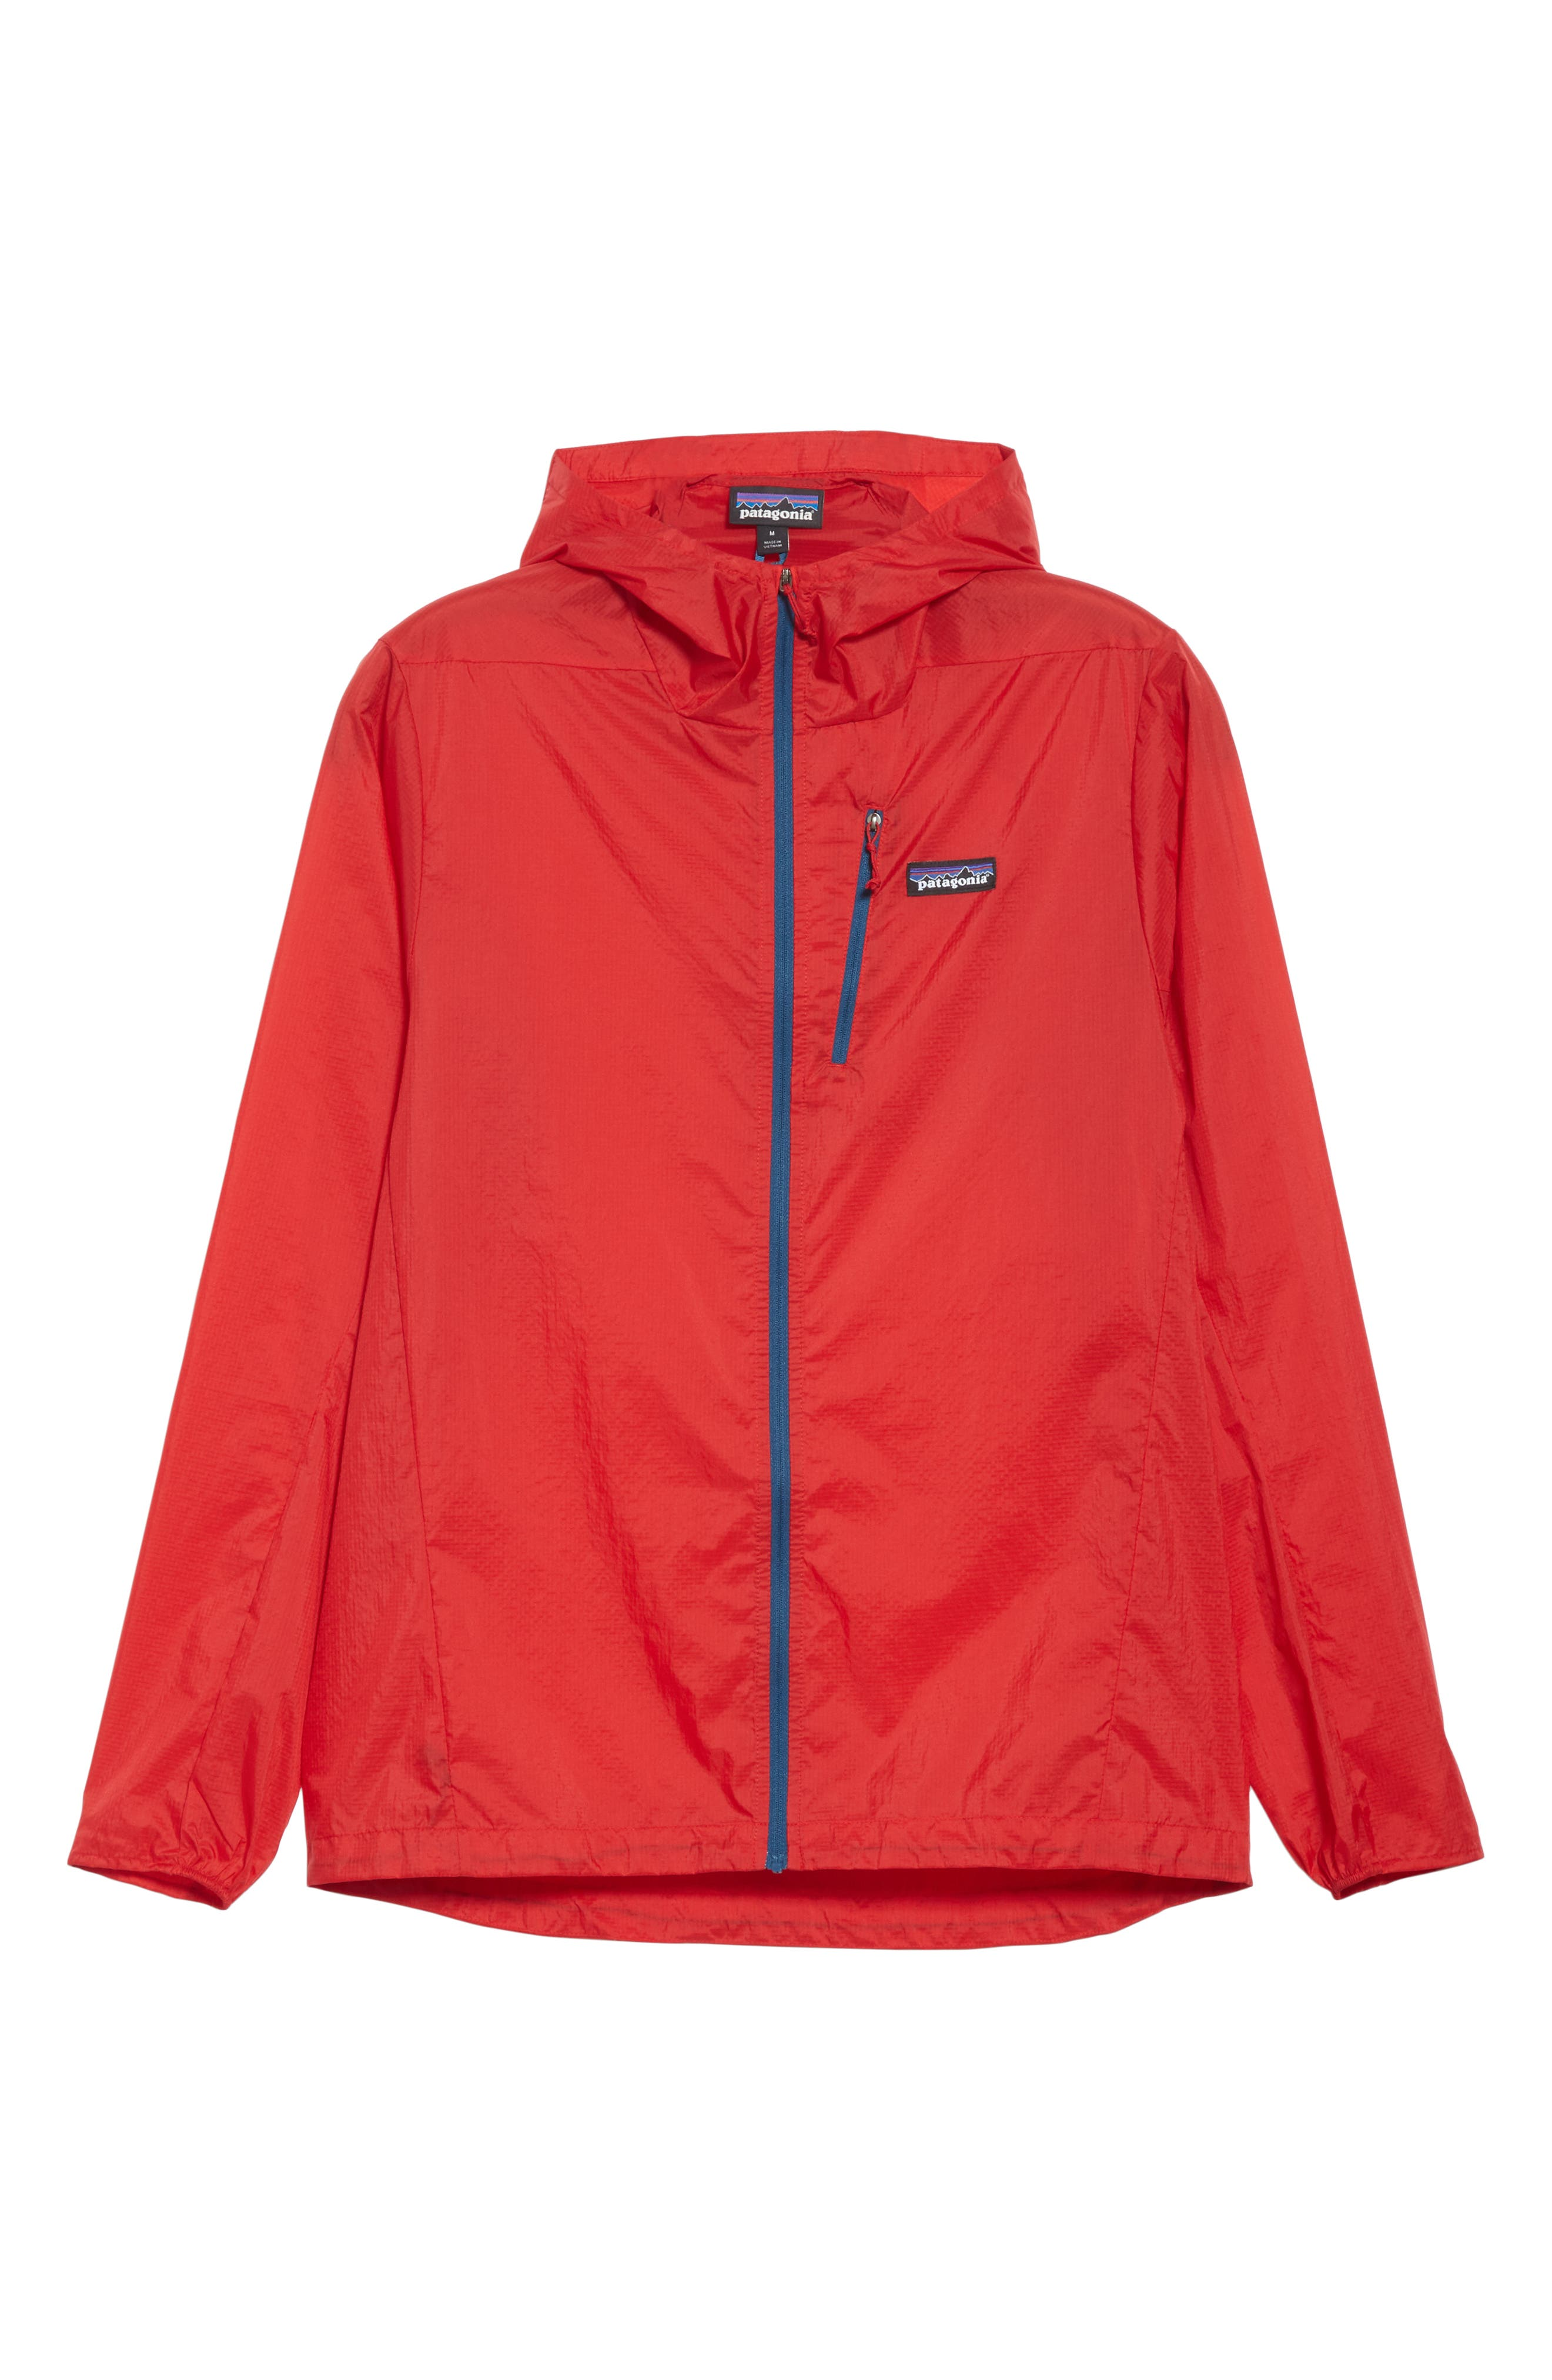 Patagonia Houdini Water Repellent Hooded Jacket, Red